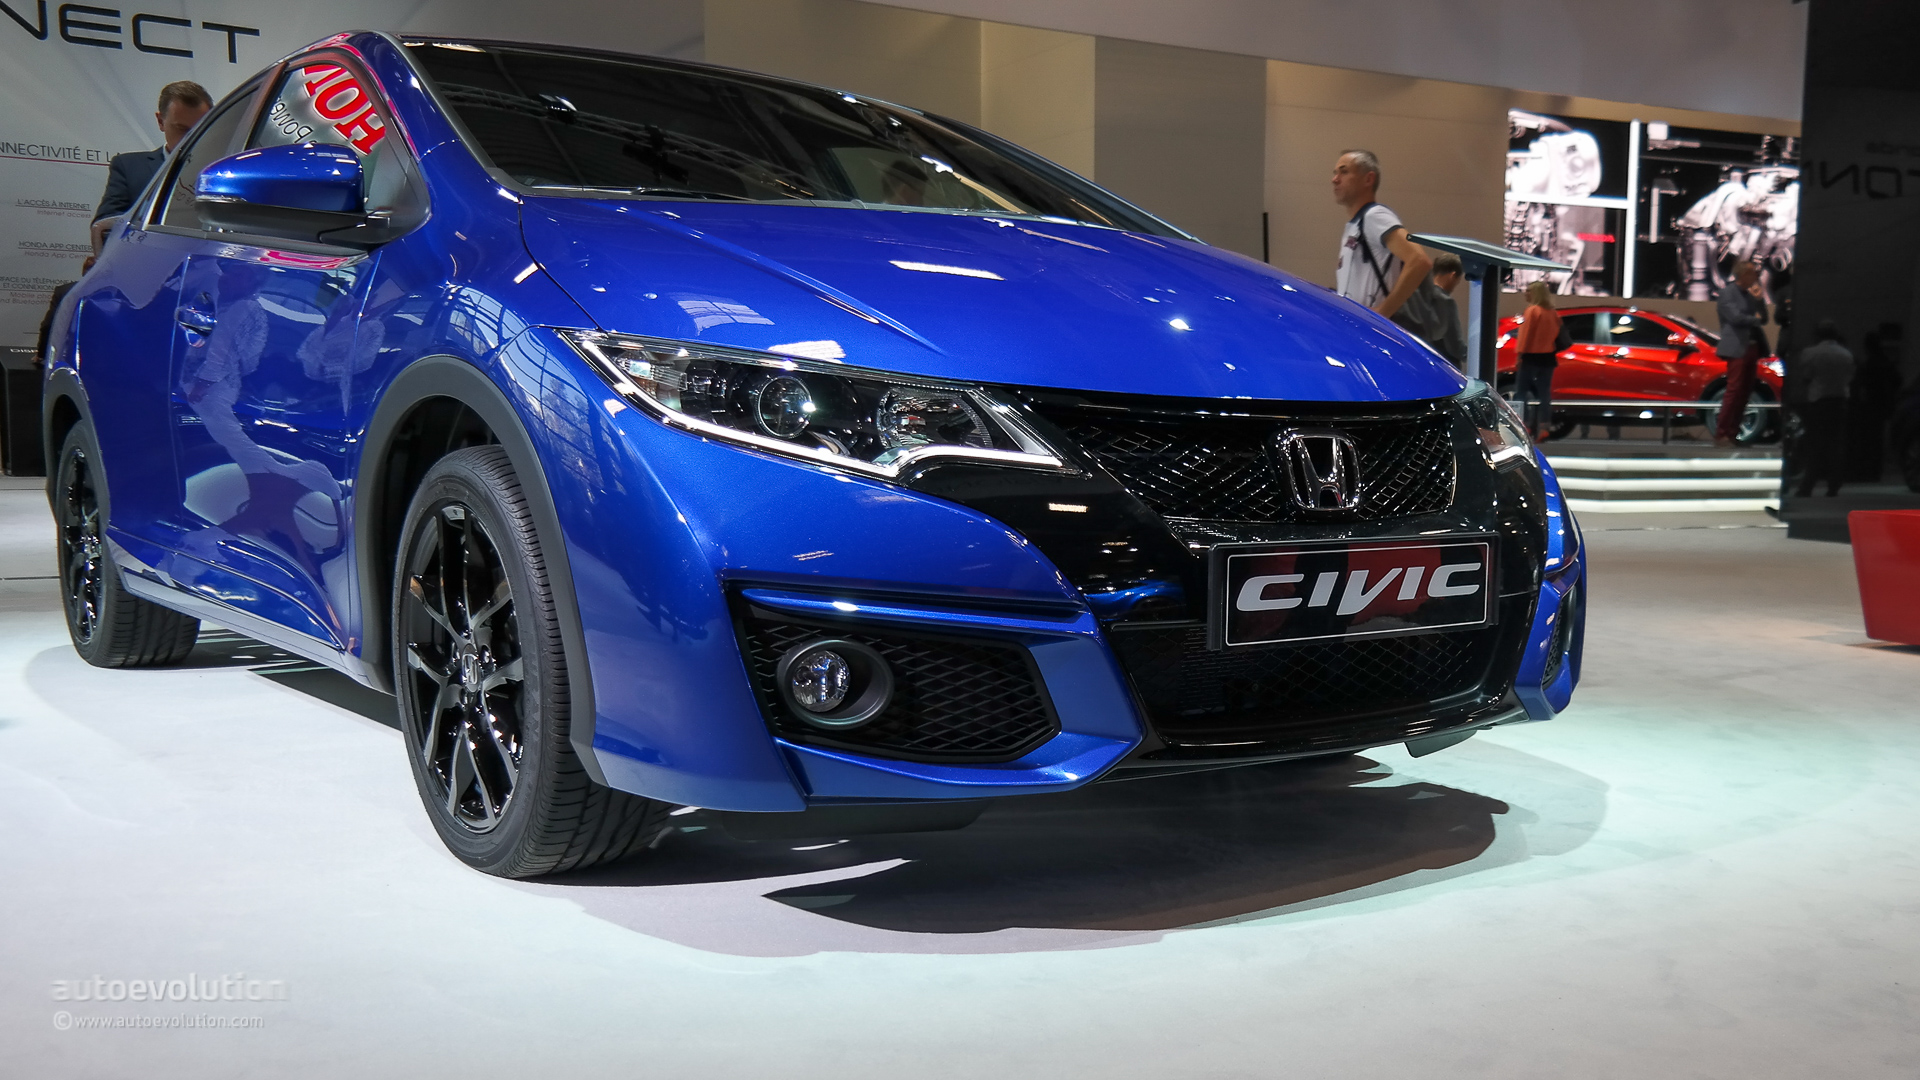 Honda Civic 5 Door Hatchback Coming To The Us In 2016